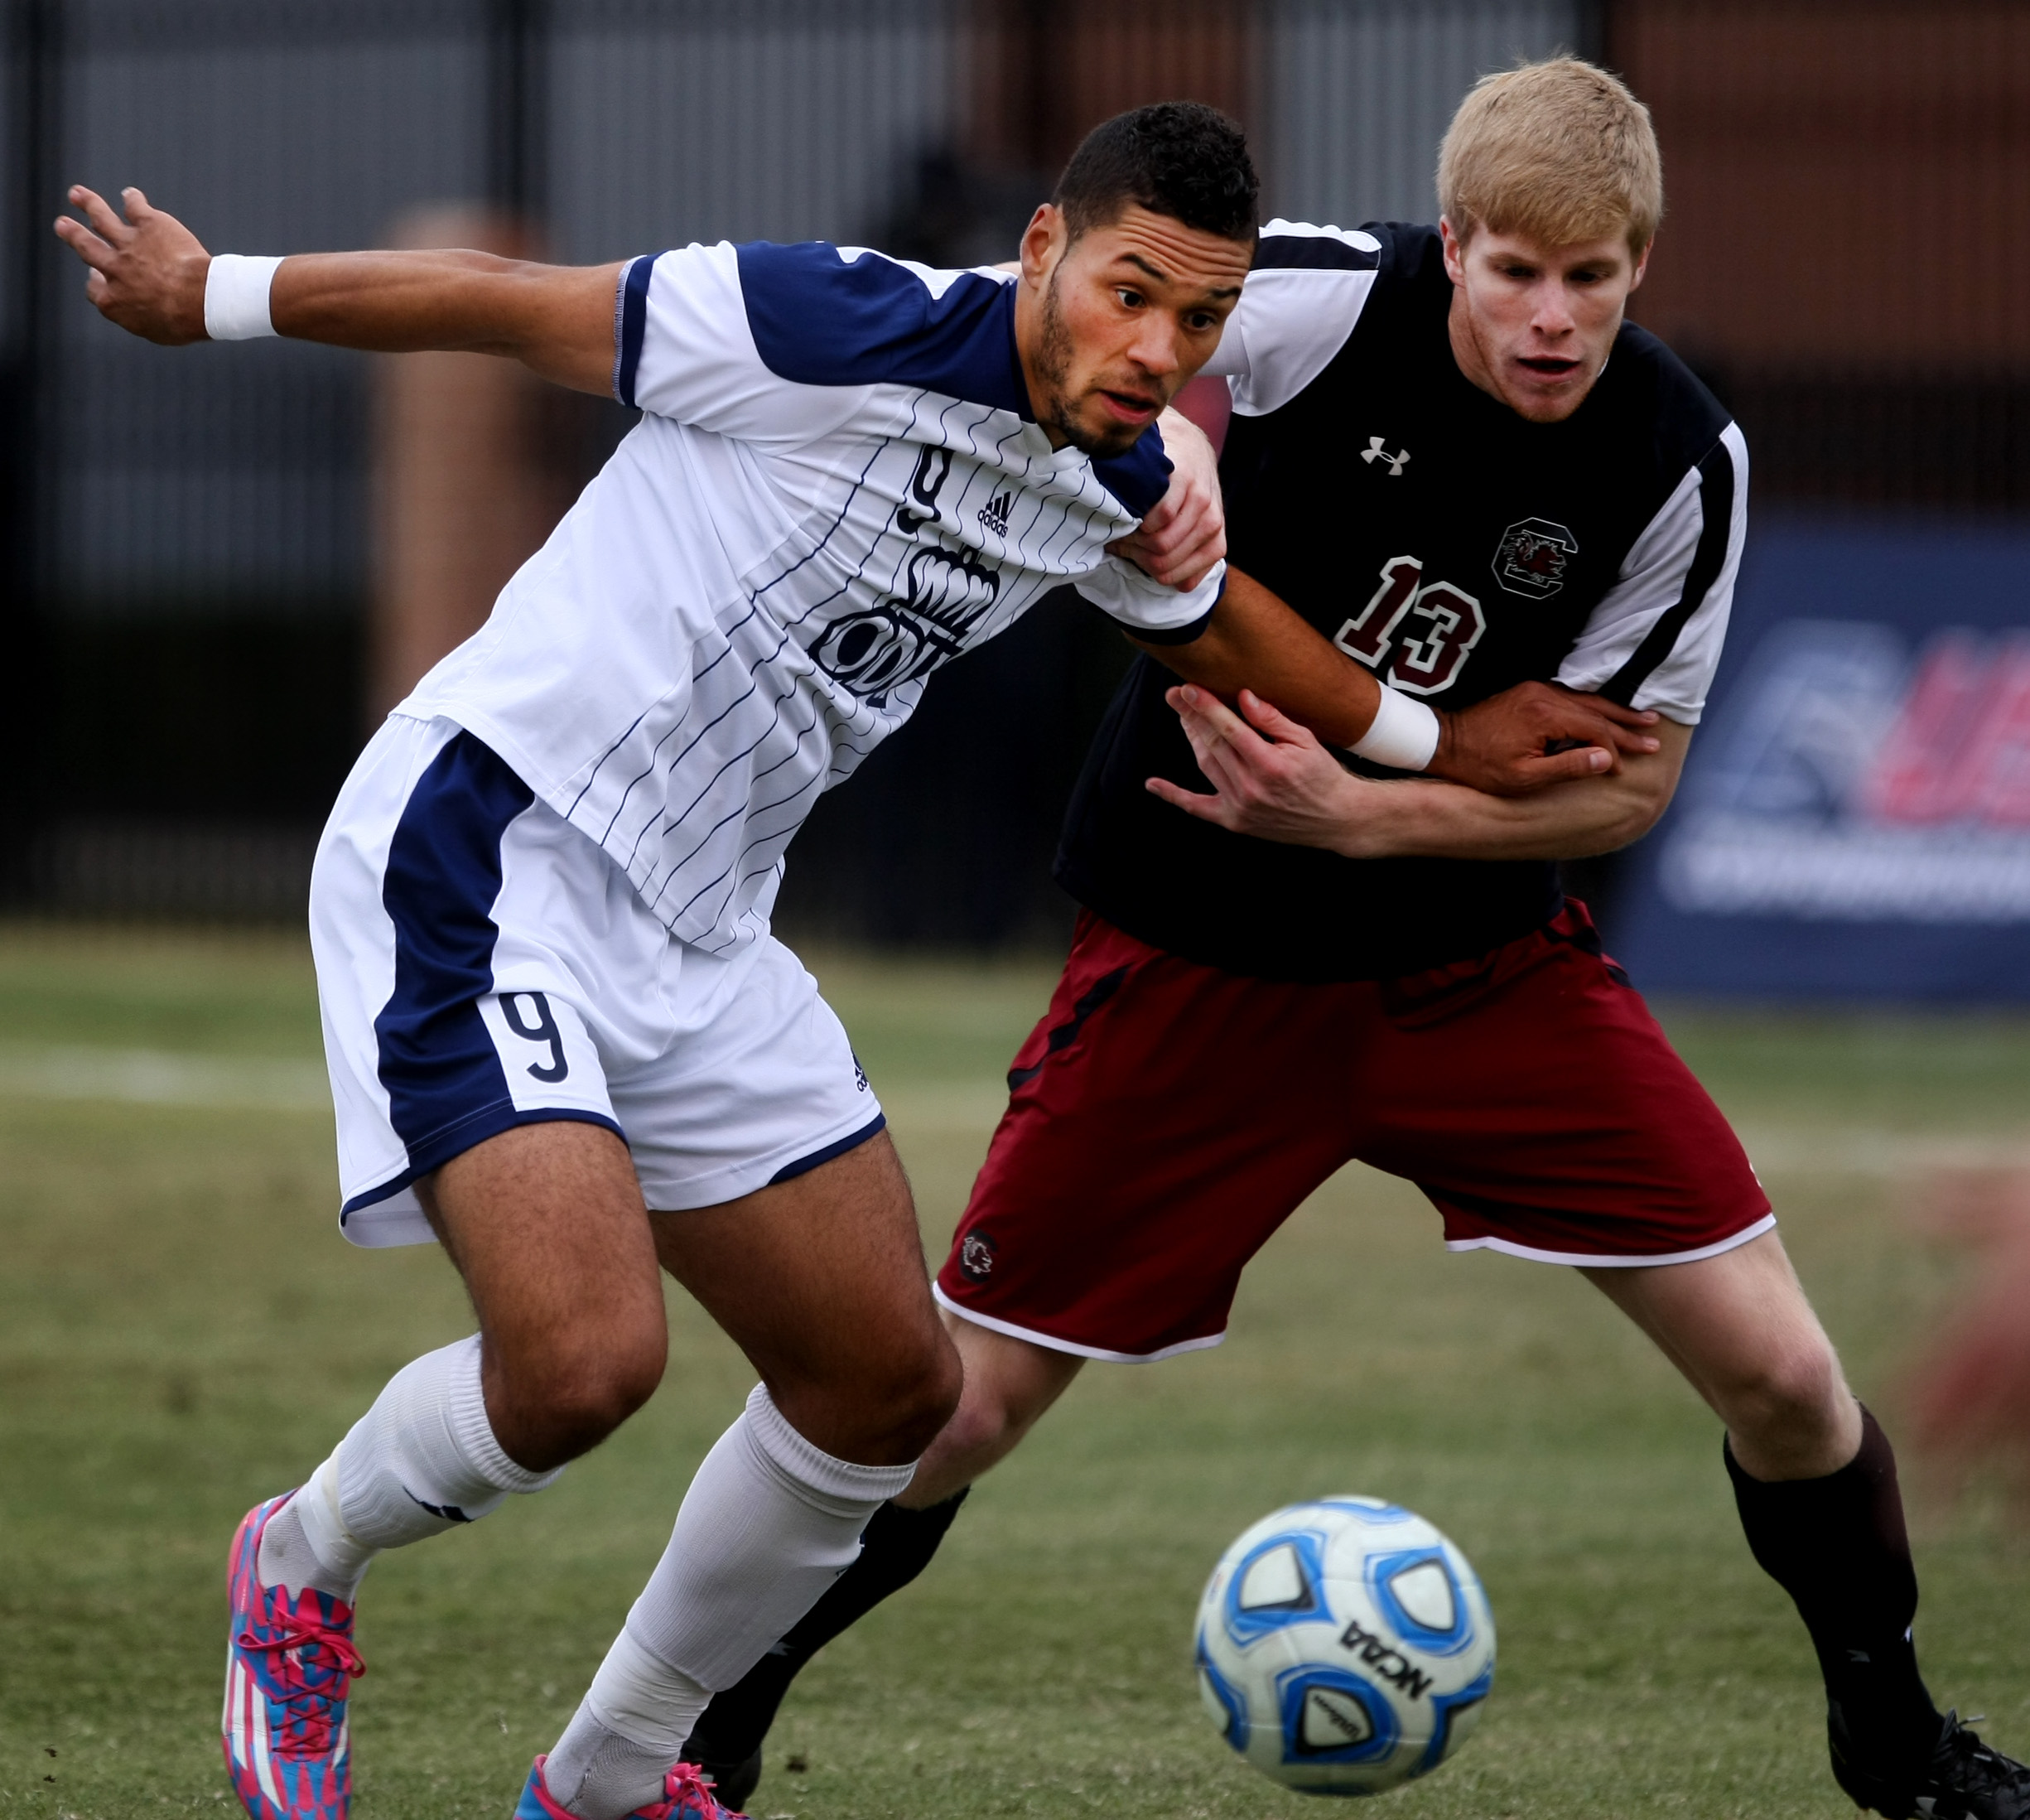 Old Dominion's Sidney Rivera, left, and University of South Carolina's Braeden Troyer battle for possession during first half action of ODU's 2-1 win over USC to claim the Conference USA Men's Soccer Final, Sunday, Nov. 16, 2014 at ODU in Norfolk.  (Jason Hirschfeld | For The Virginian-Pilot)